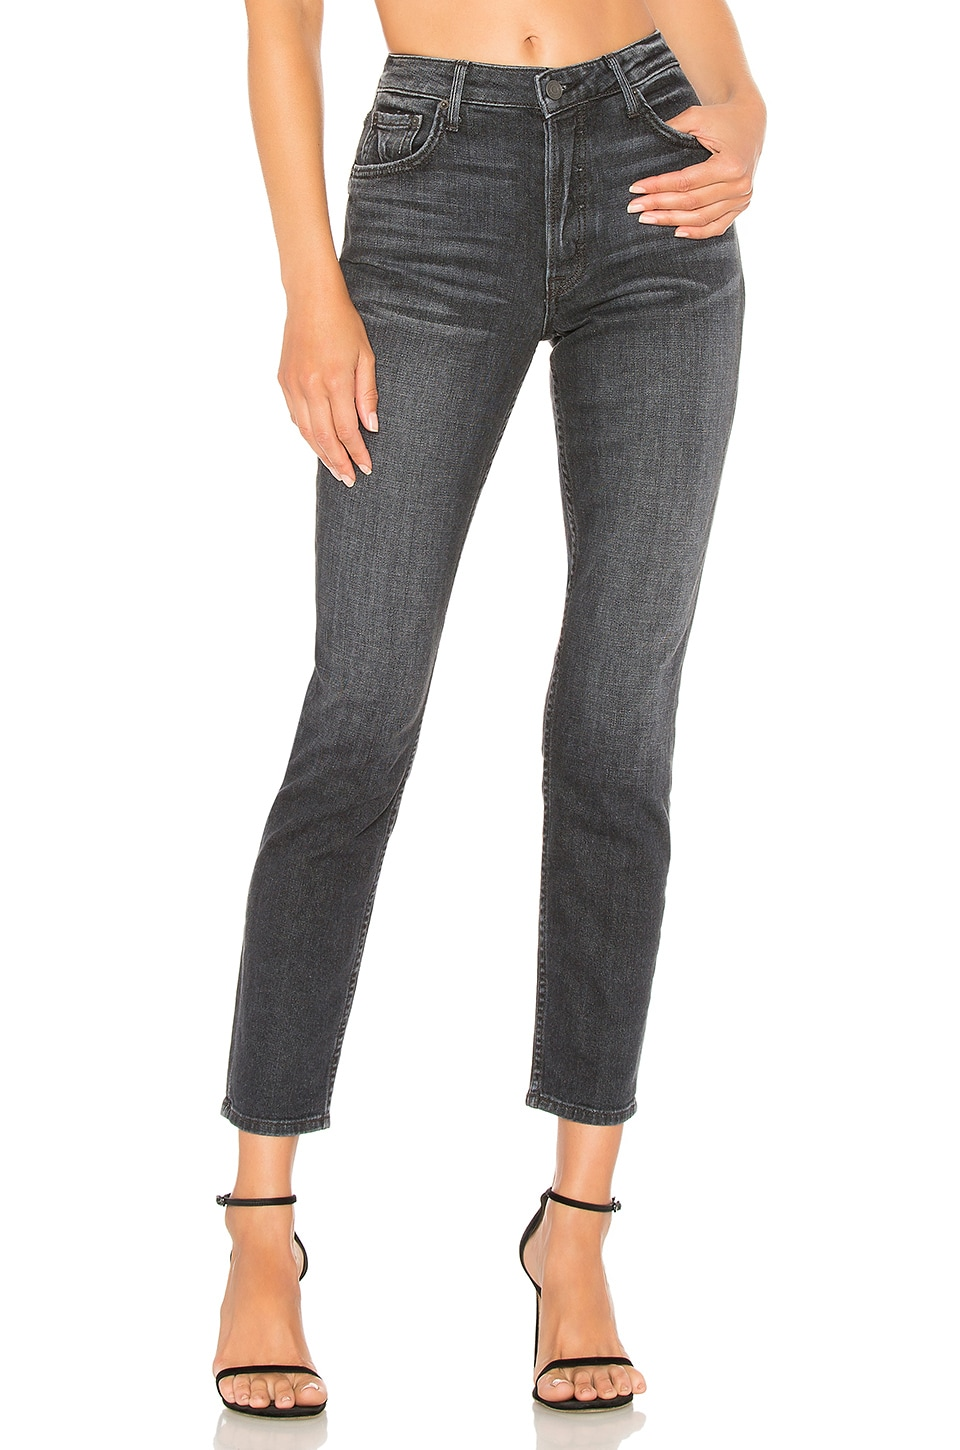 Kiara Relaxed Jeans - Black Size 23 in Dark Gray